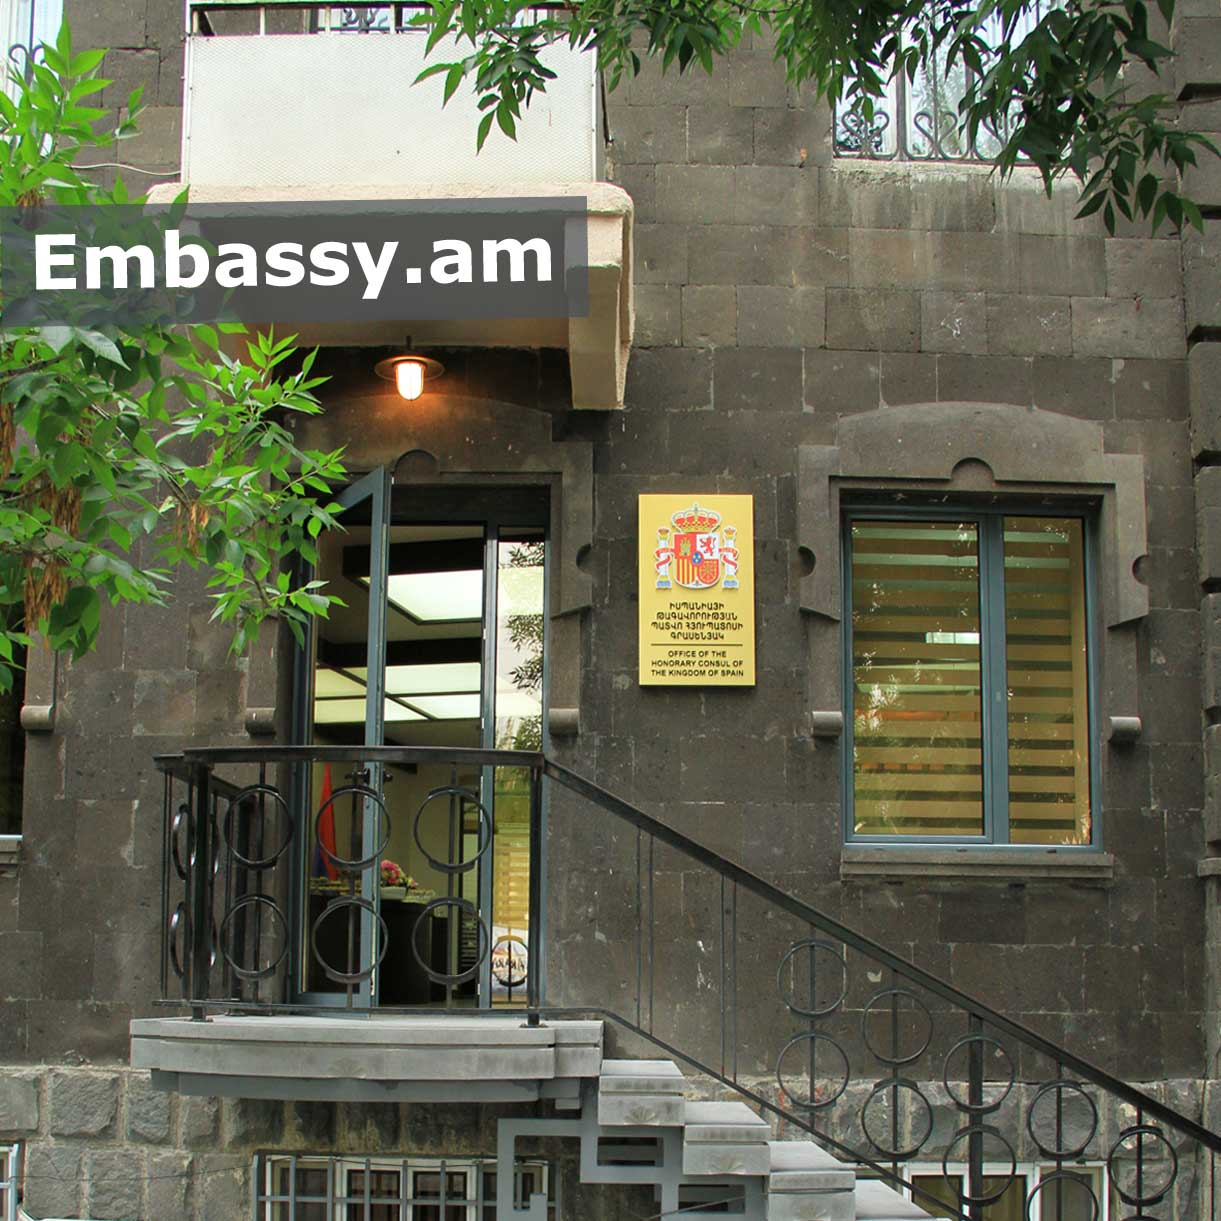 Office of the Honorary Consul of Spain in Yerevan: www.embassy.am